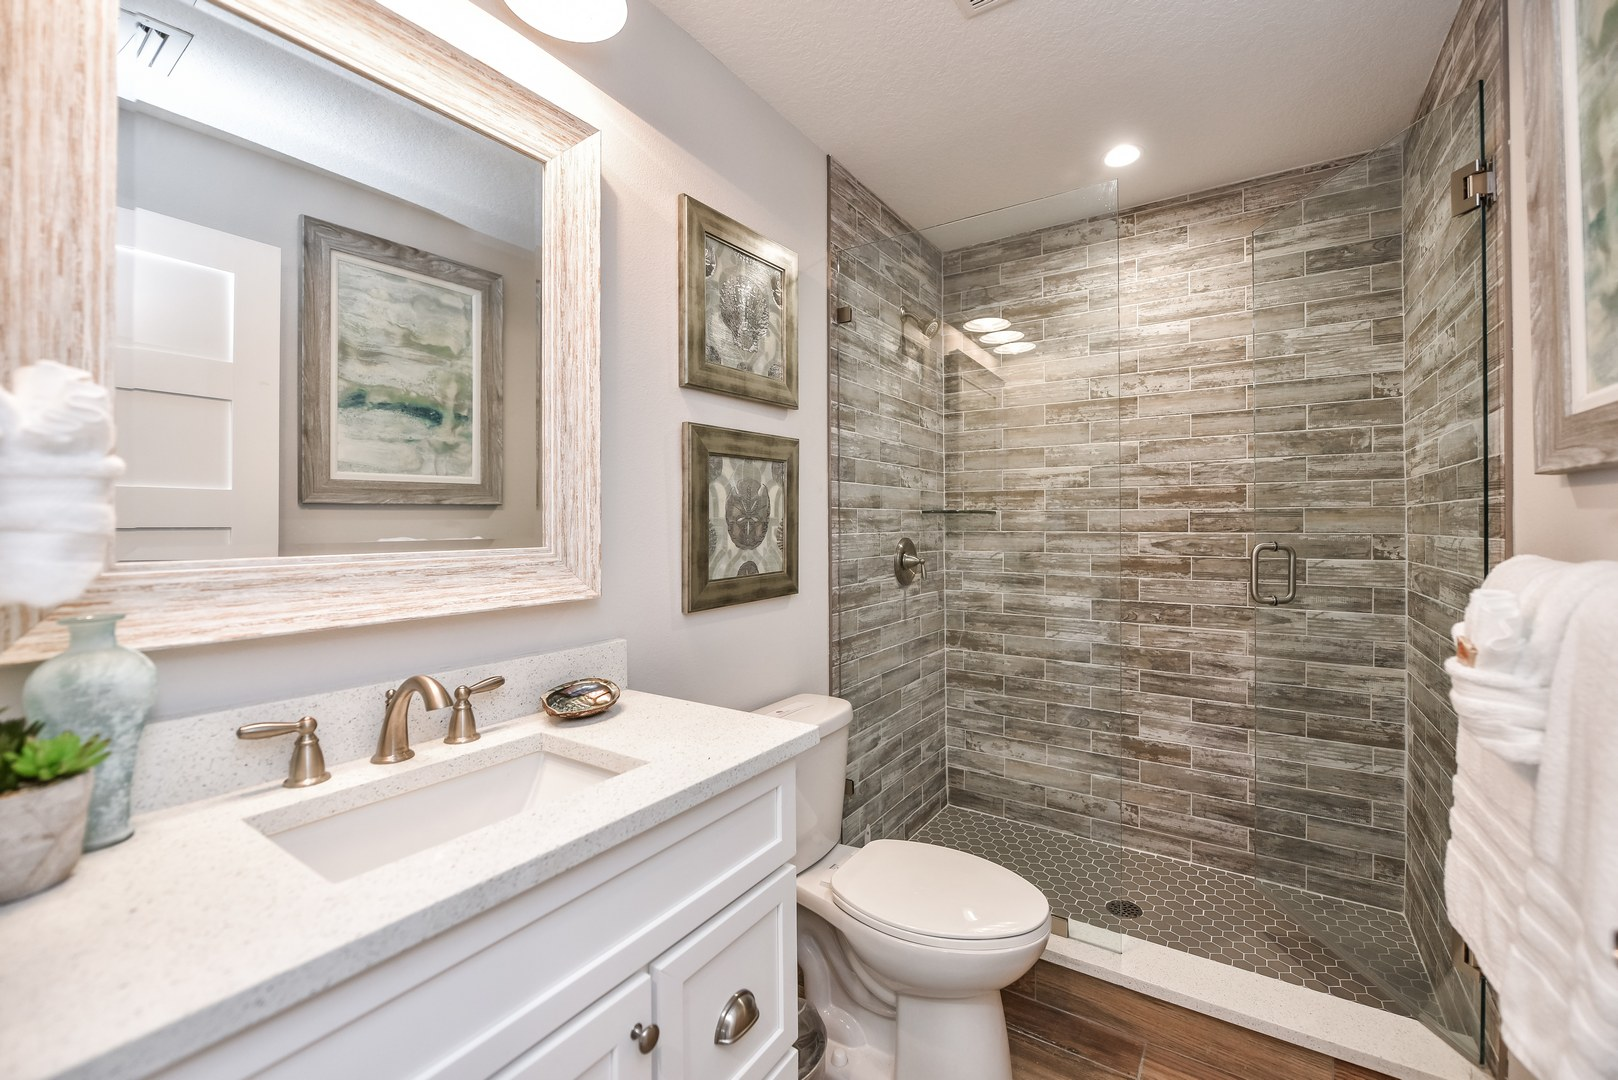 Just 1 of the 6.5 Beautiful Bathrooms